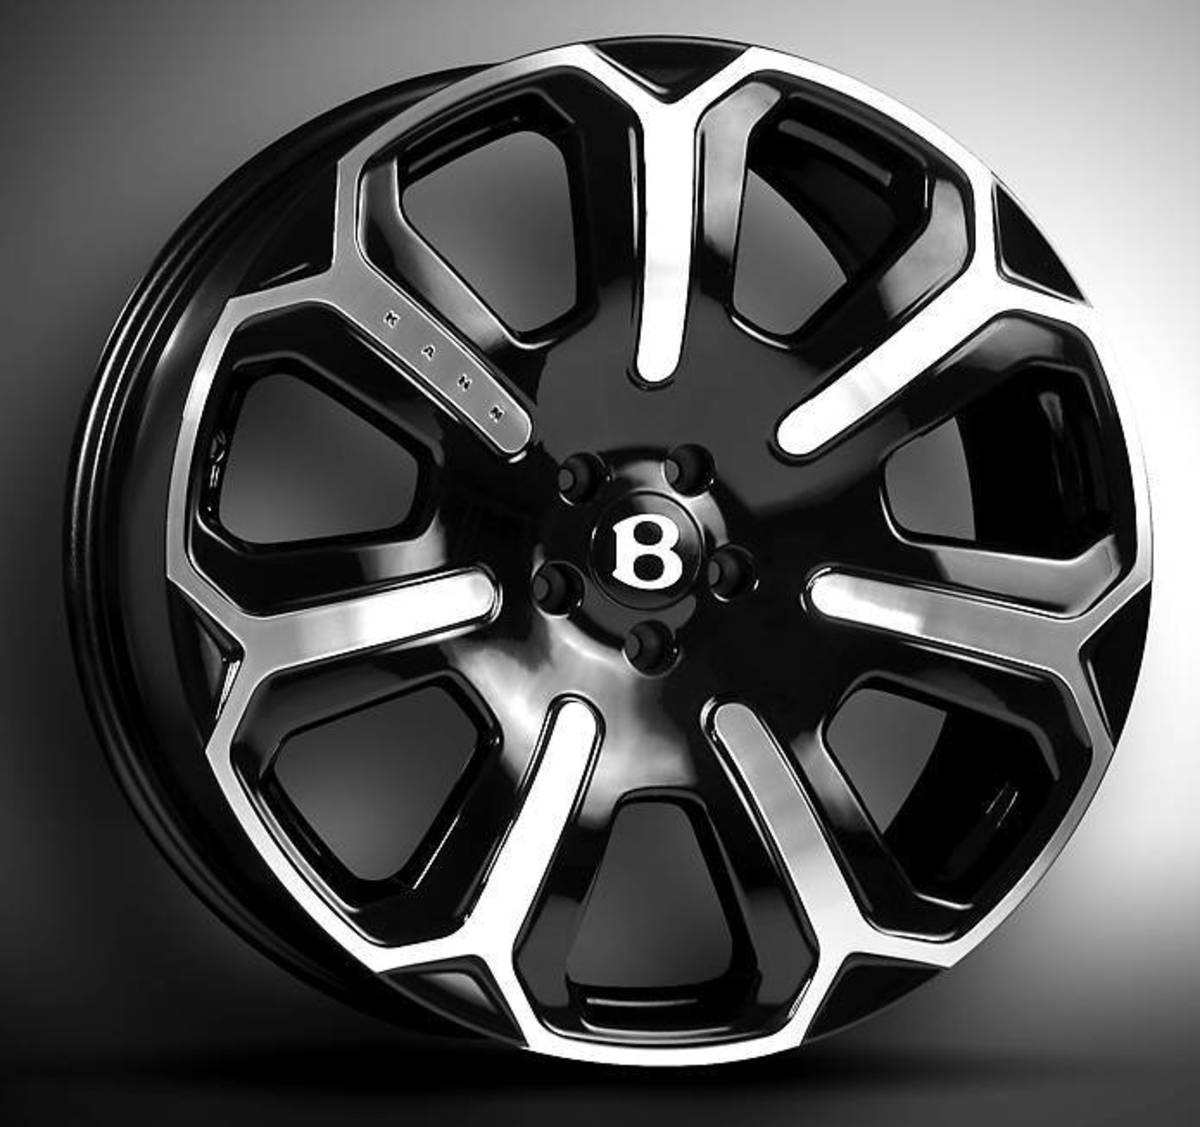 Buying Alloy Wheels for Cars: Benefits | Mileage | Tire Pressure